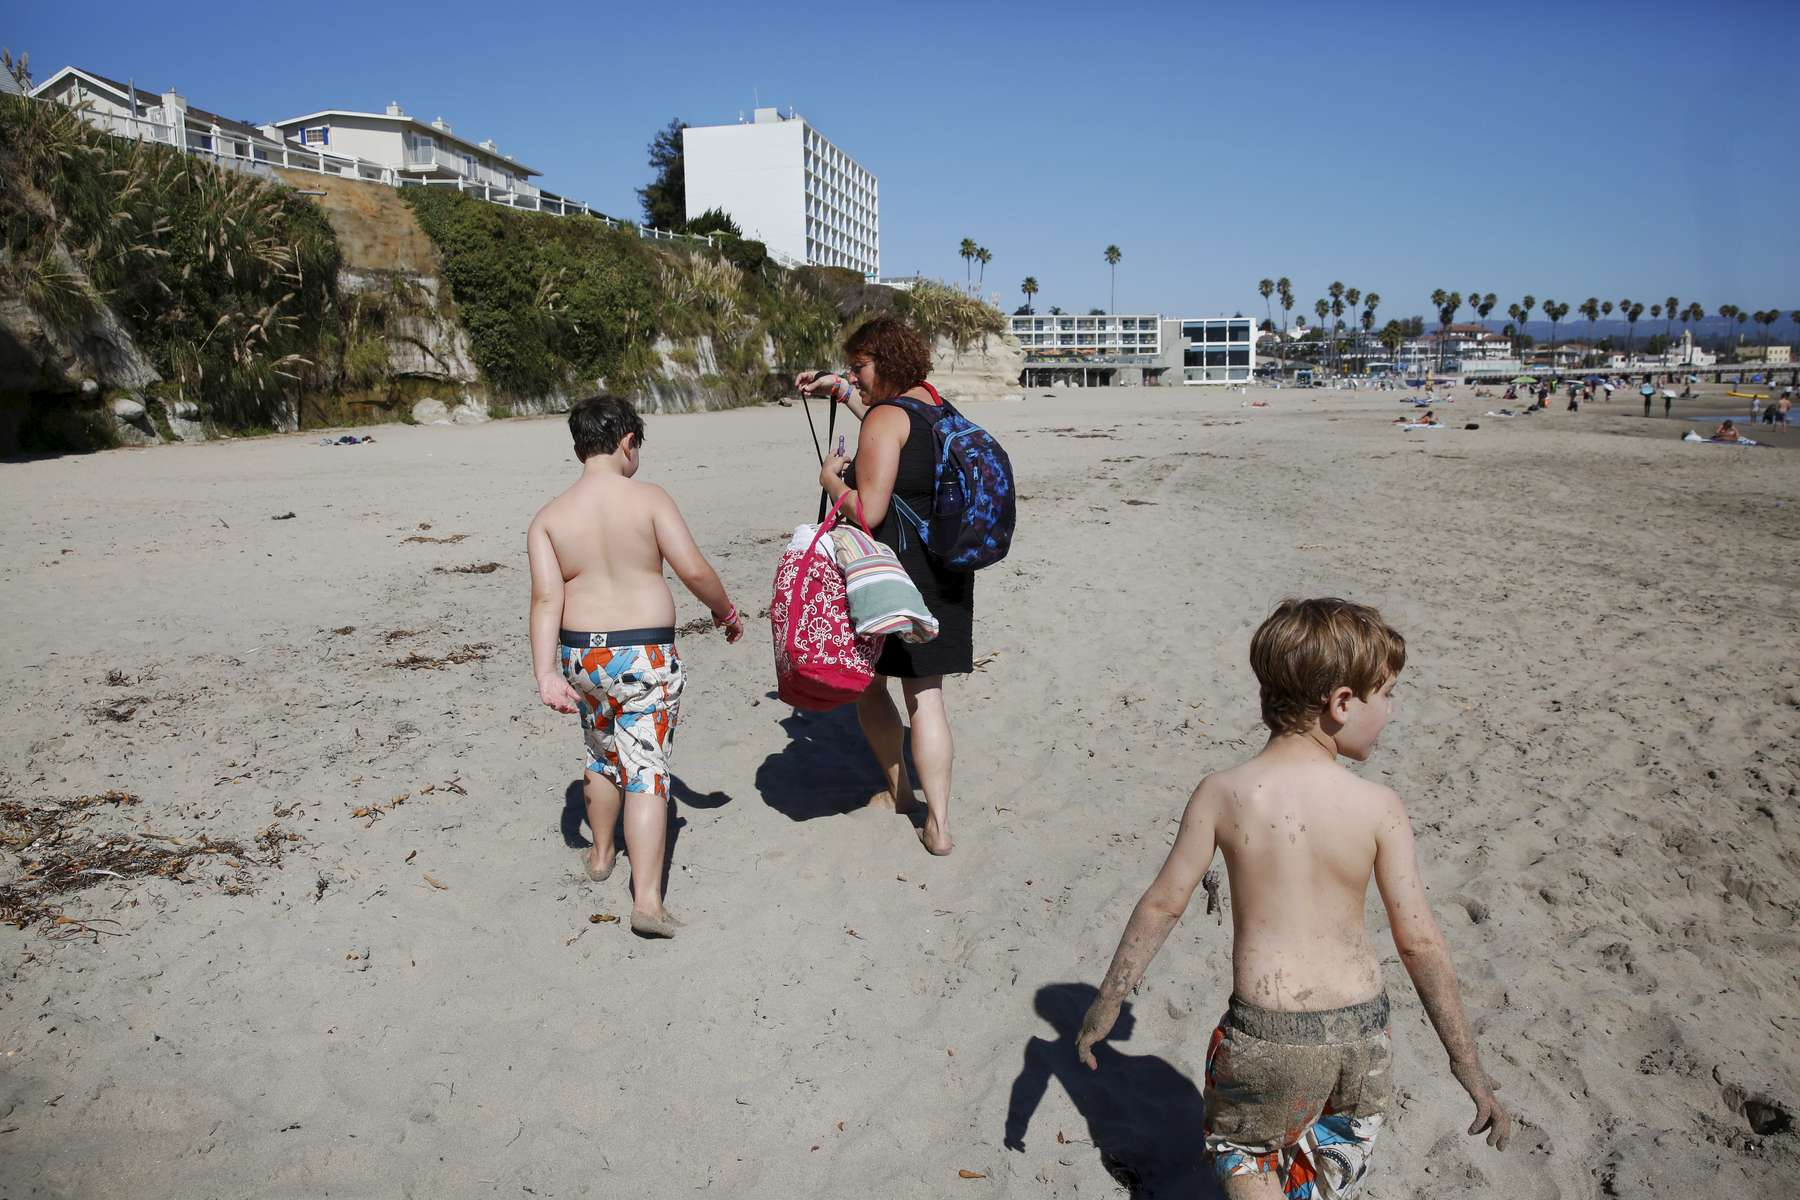 From left, siblings James Kaplan, 8, and Charley Kaplan, 4, walk back to their hotel with their mother Sara Kaplan after a surfing lesson during a family trip Oct. 9, 1016 sponsored by Focus on Cancer in Santa Cruz, Calif. Sara, who survived kidney cancer, was sponsored by the company which works with cancer patients and survivors and their loved ones to provide support and special trips to reduce social isolation. Since the reporting of this story, Charley has been living as a girl. She is wearing dresses, growing her hair out and has taken a more feminine name.